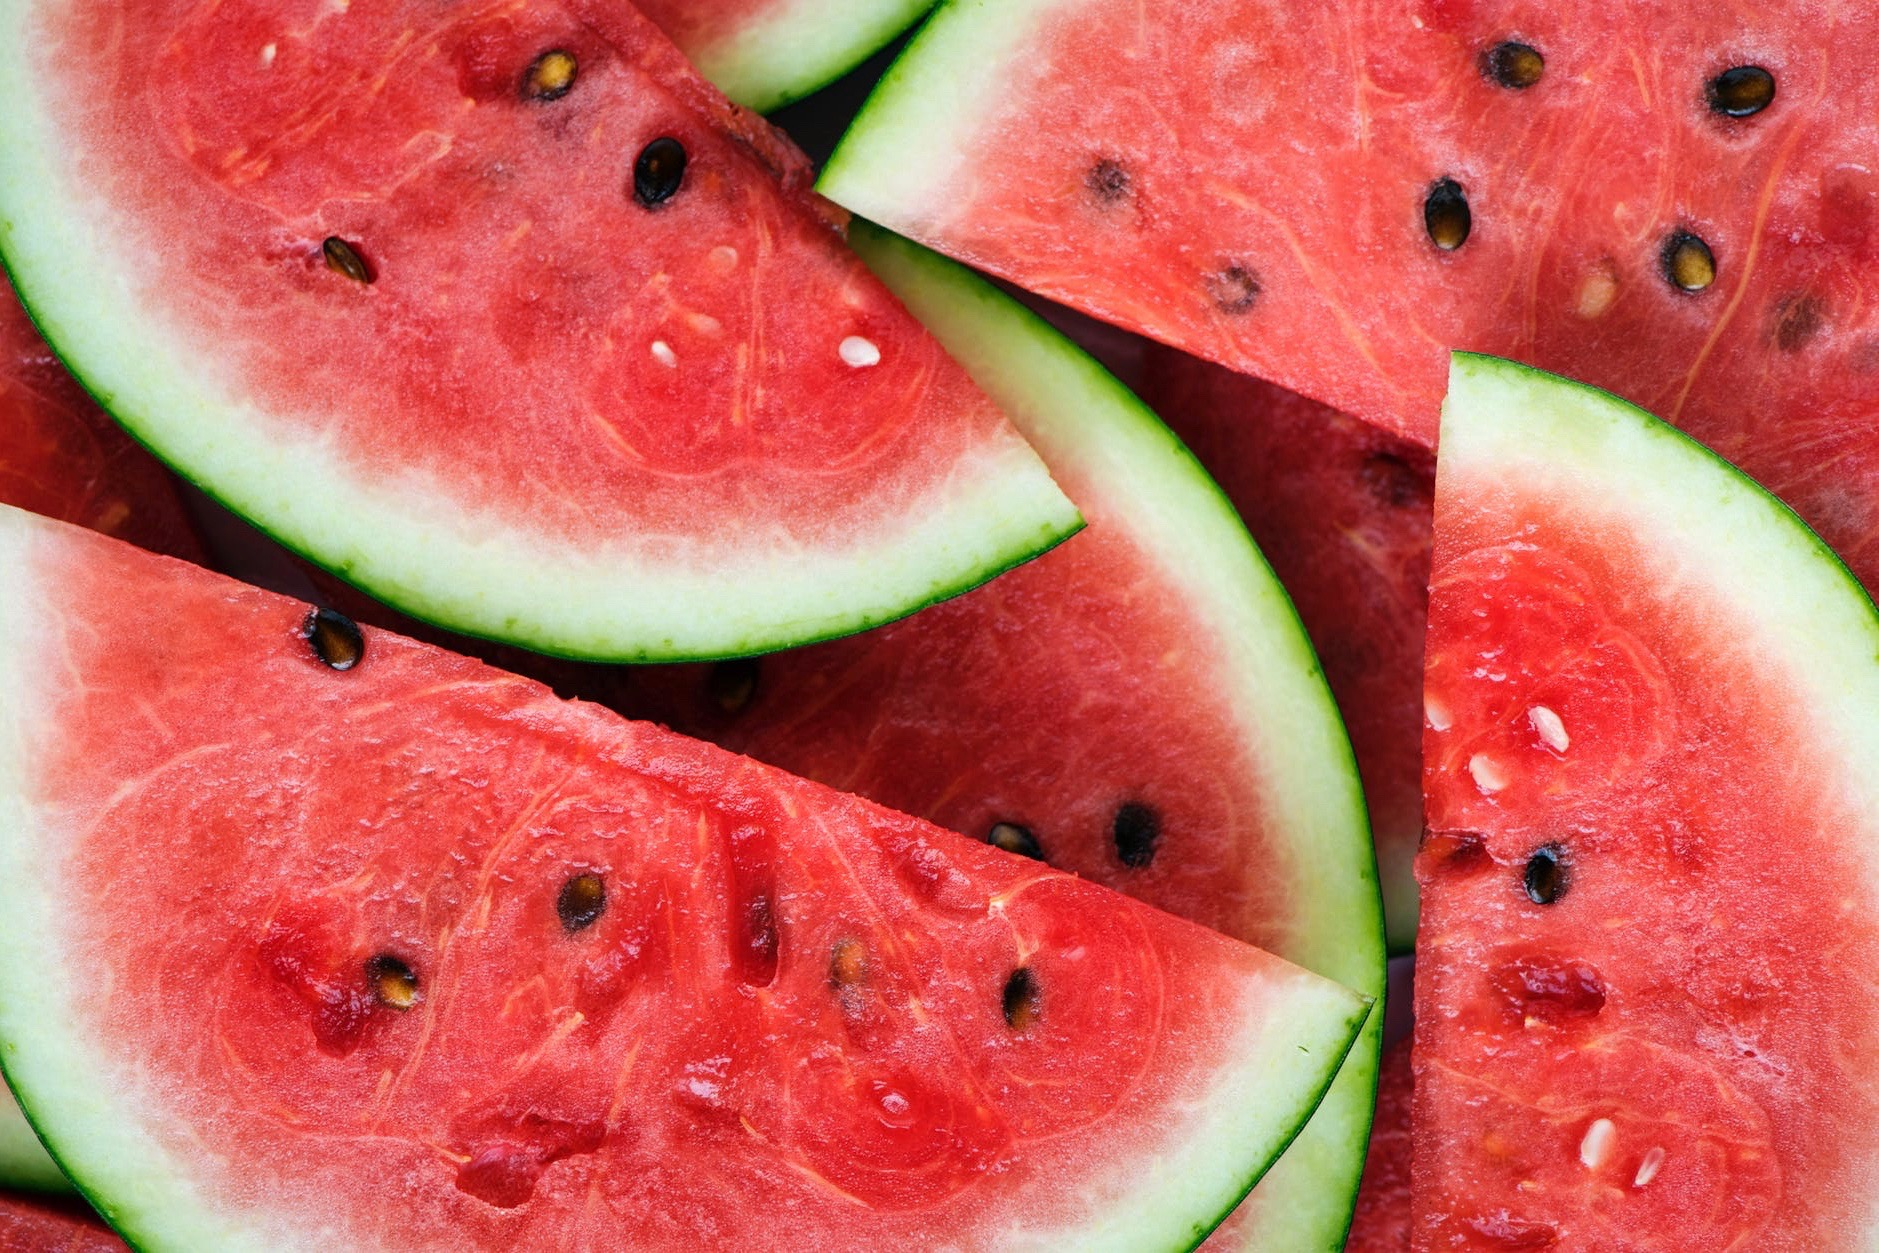 #Nutrition Tips For You: The Delicious Watermelon Has Loads Of Benefits. Find Out!